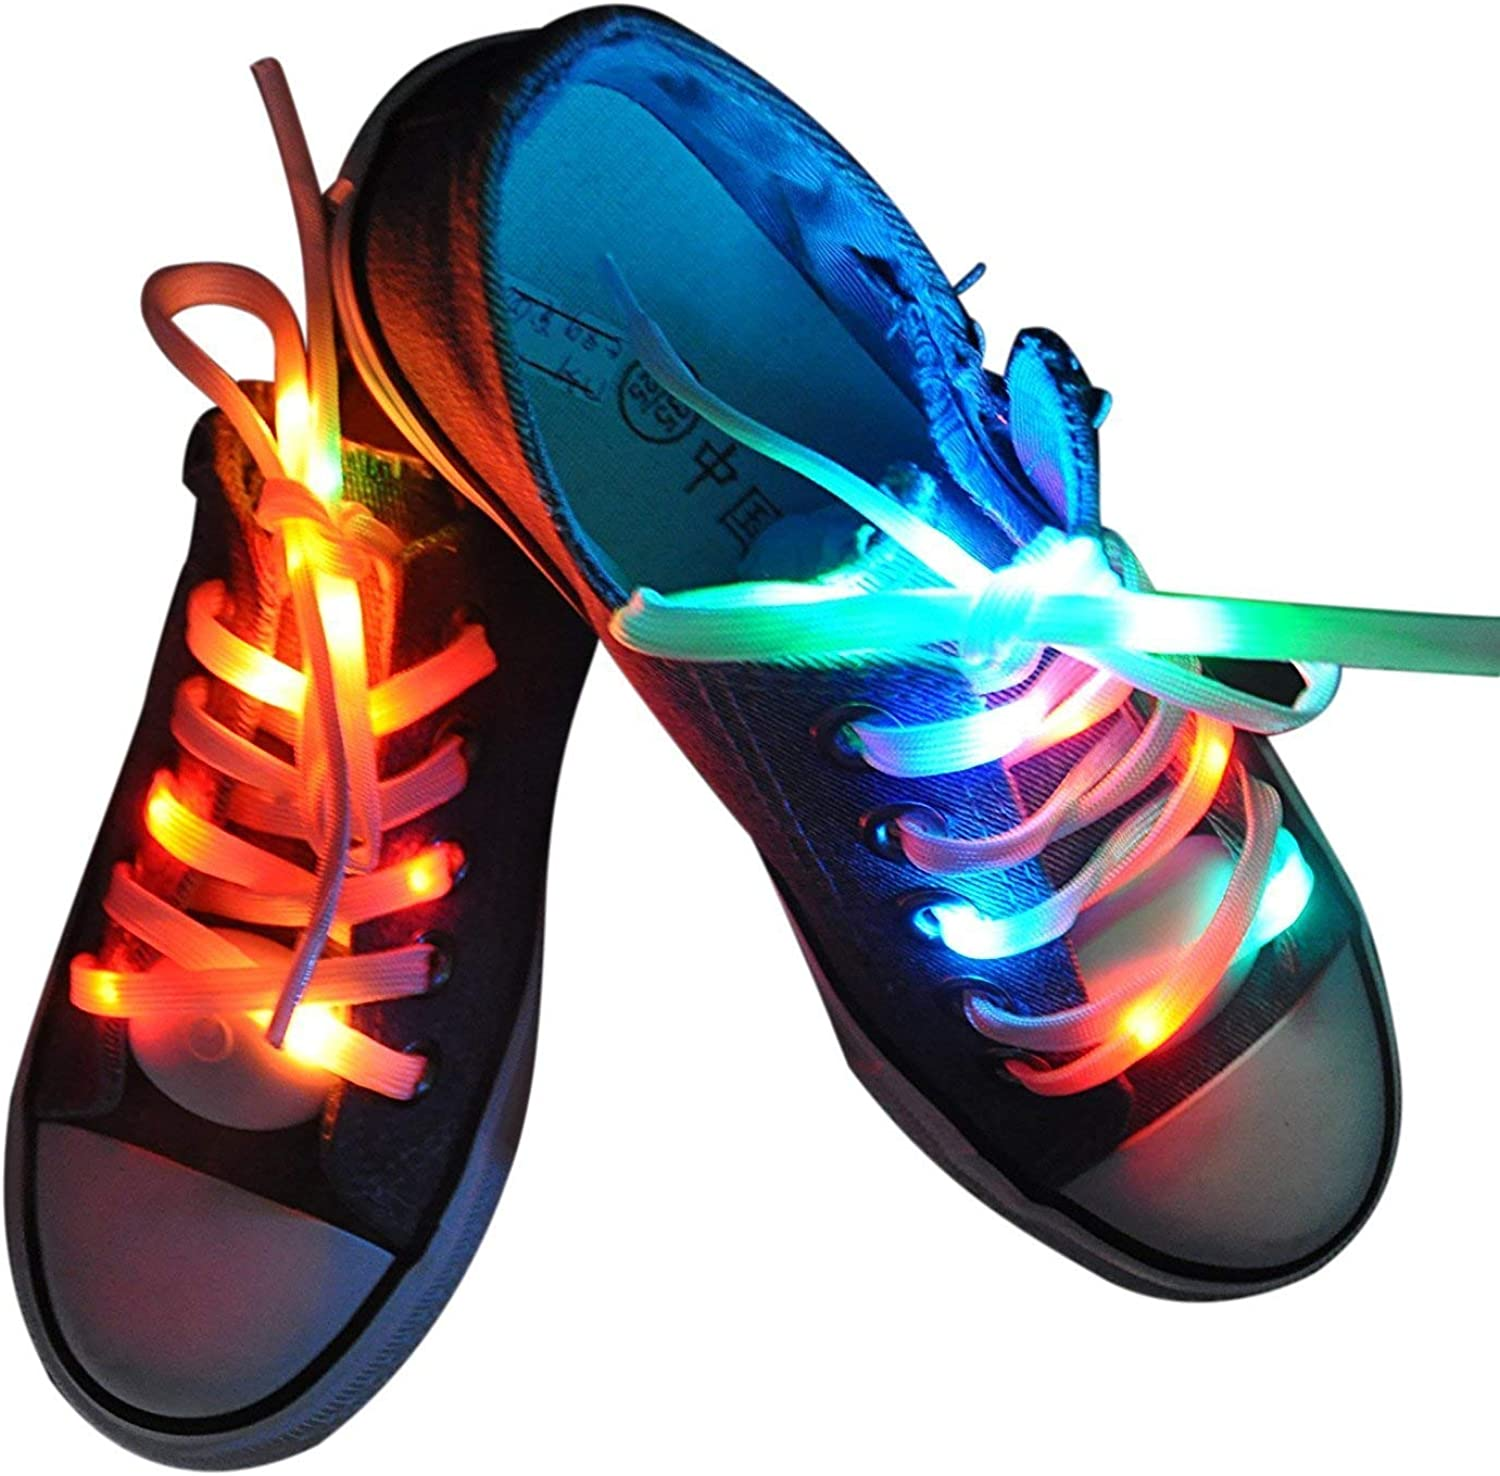 Lystaii LED Light Waterproof Shoelaces San Diego Mall Battery Cheap mail order specialty store Powere Shoestring